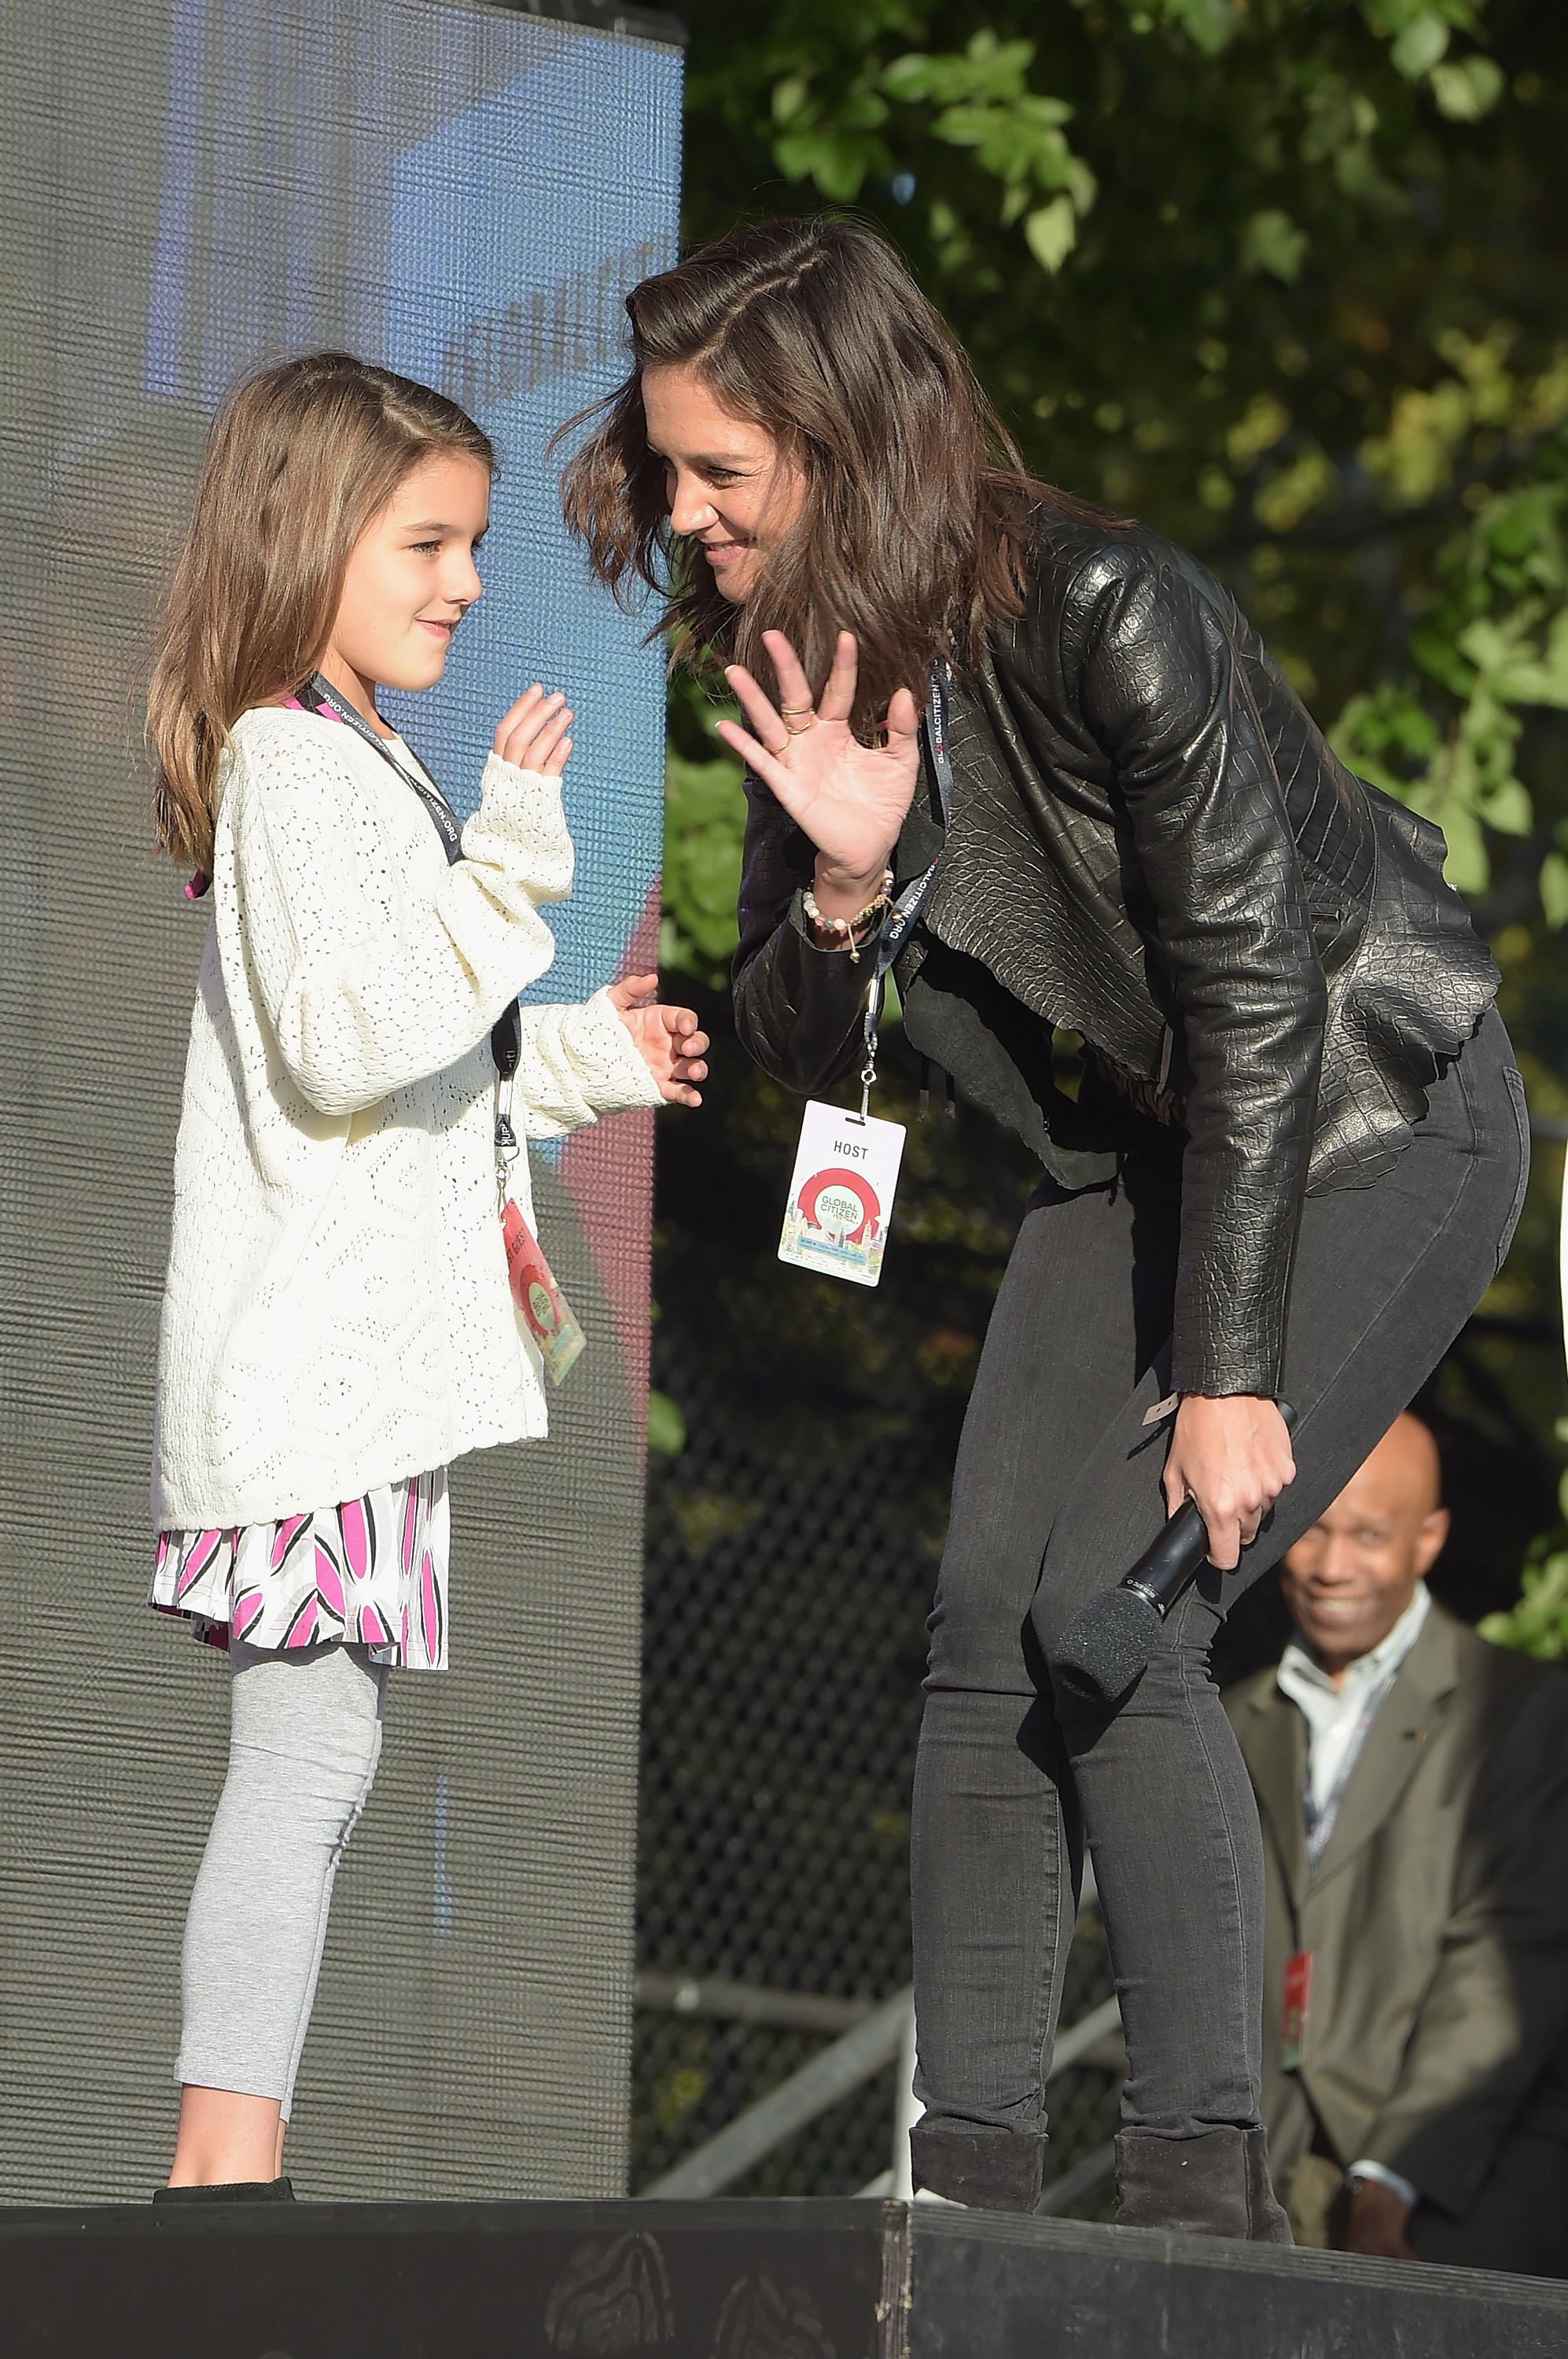 Suri Cruise joins her mom onstage at the Global Citizens Festival